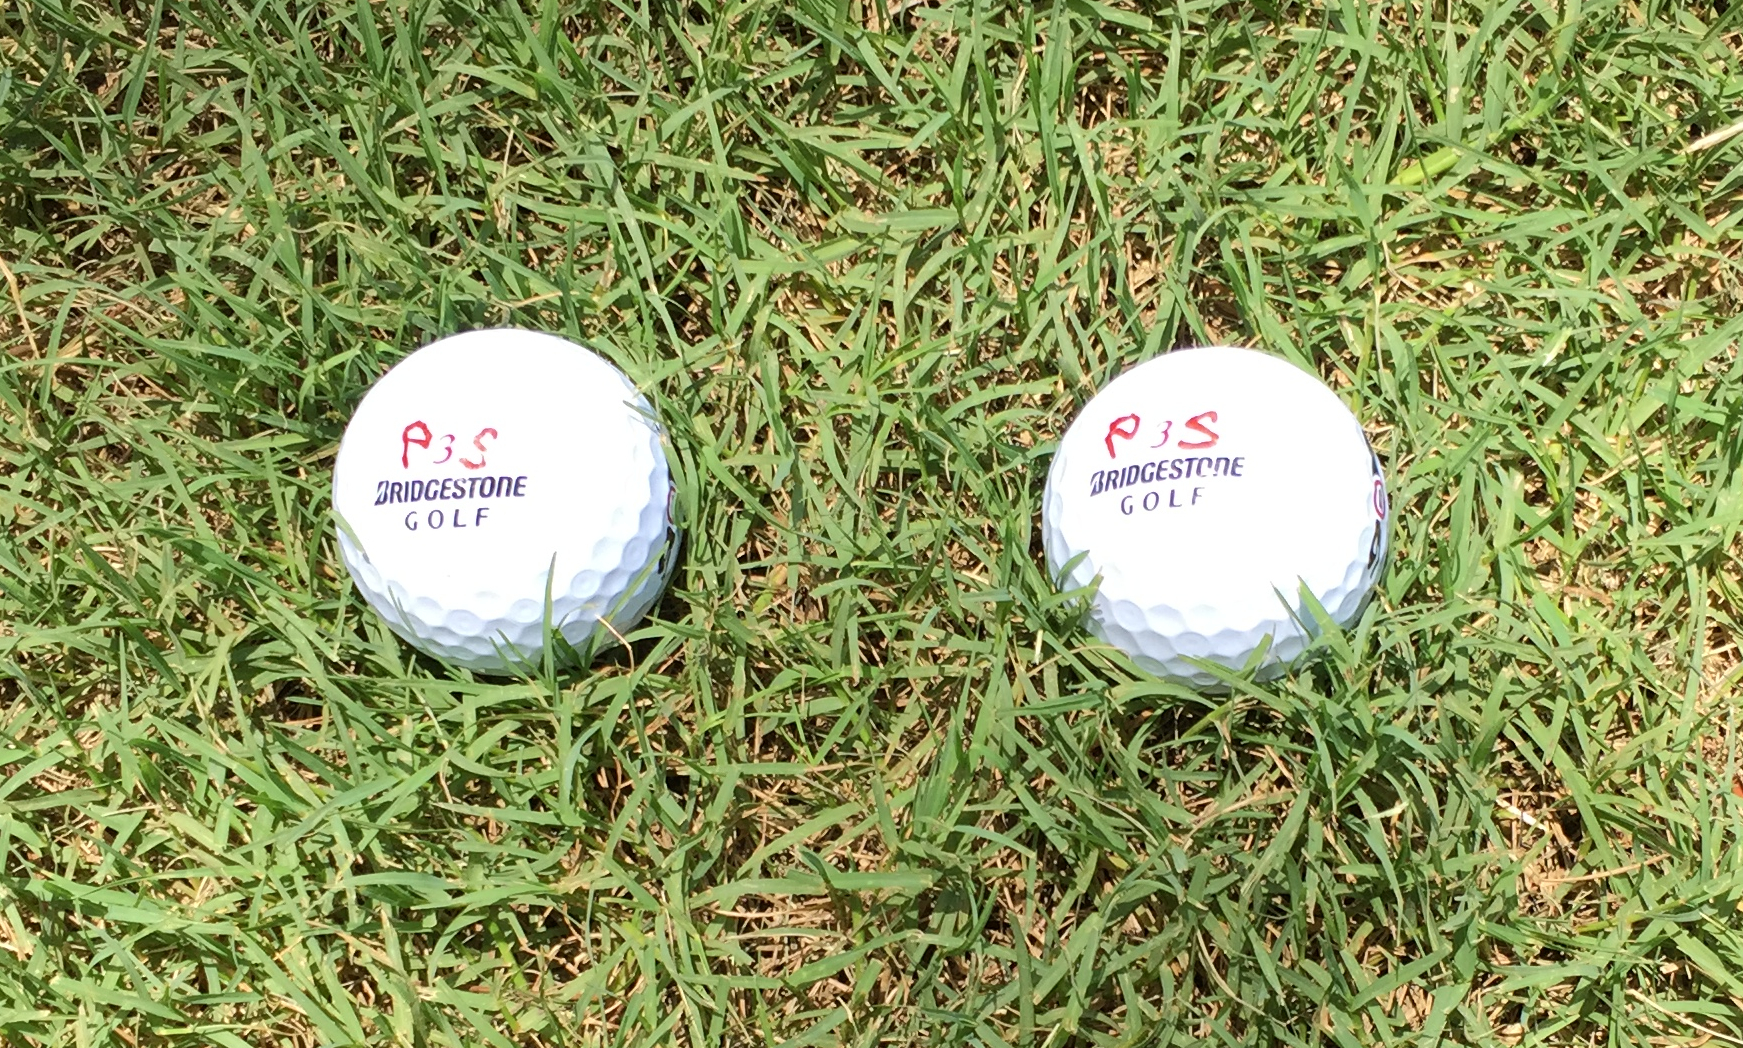 Provision Ball Looks Like First Ball